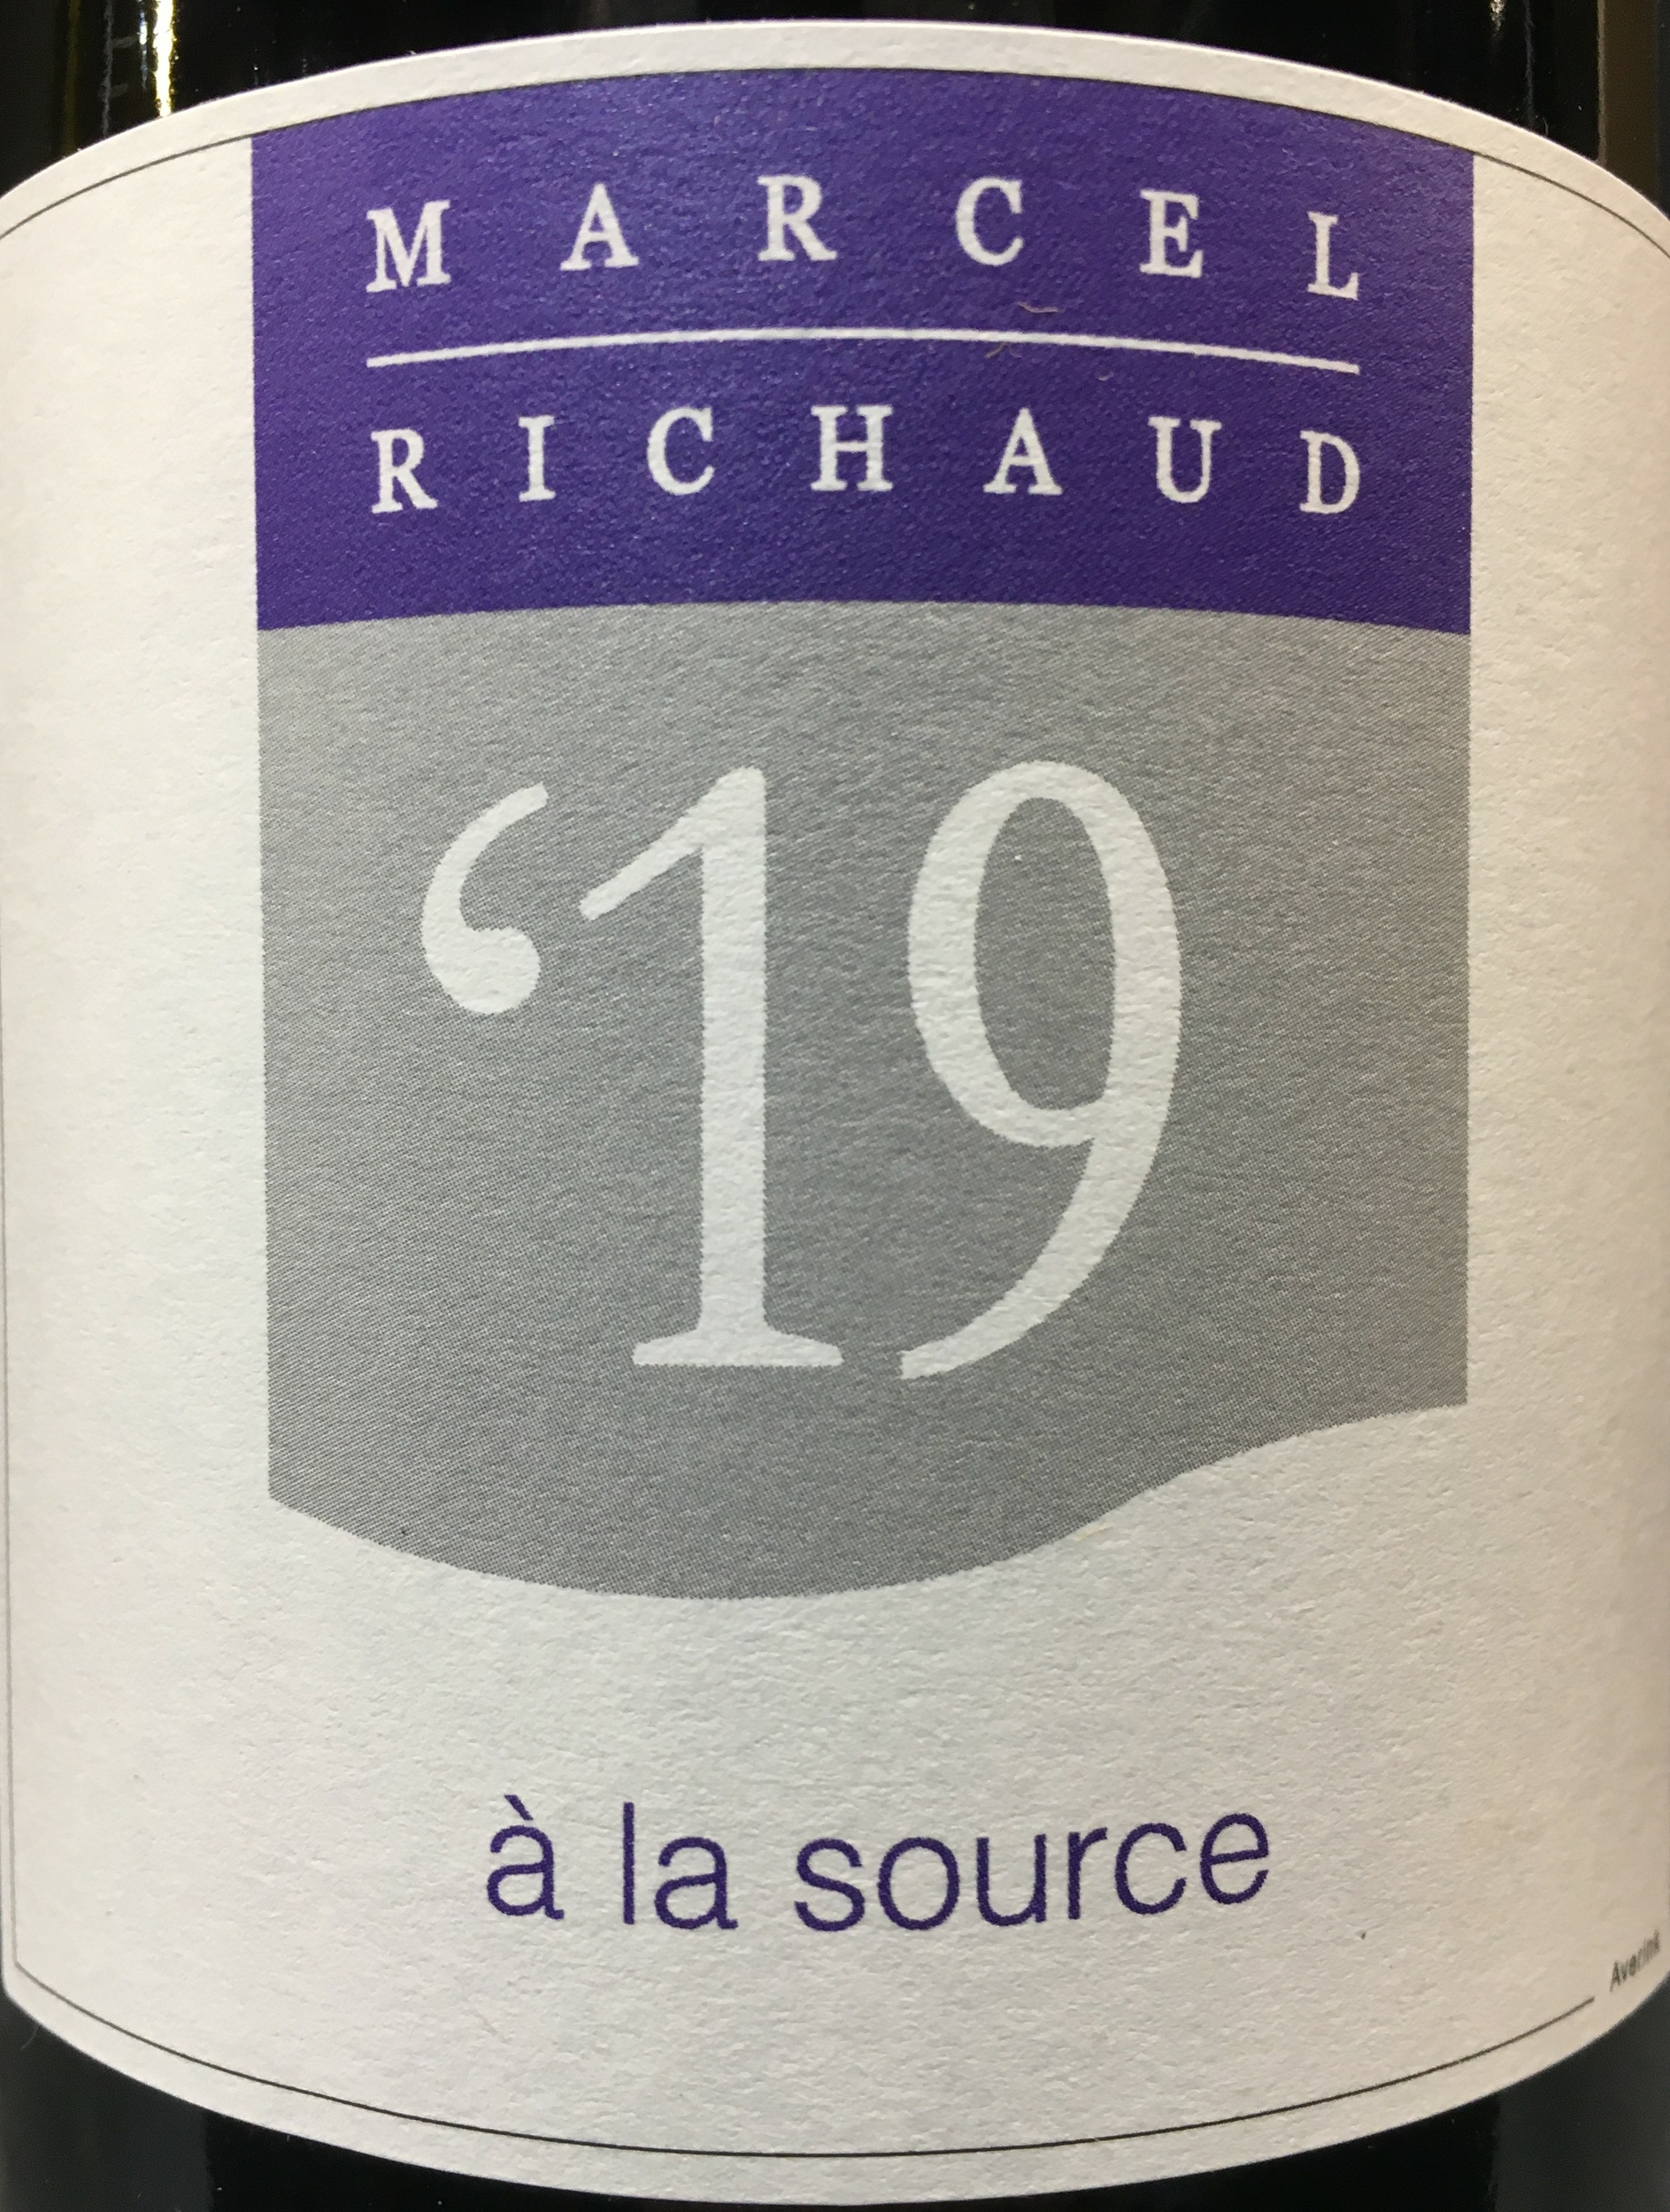 la nouvelle cave.a la source.marcel richaud.1